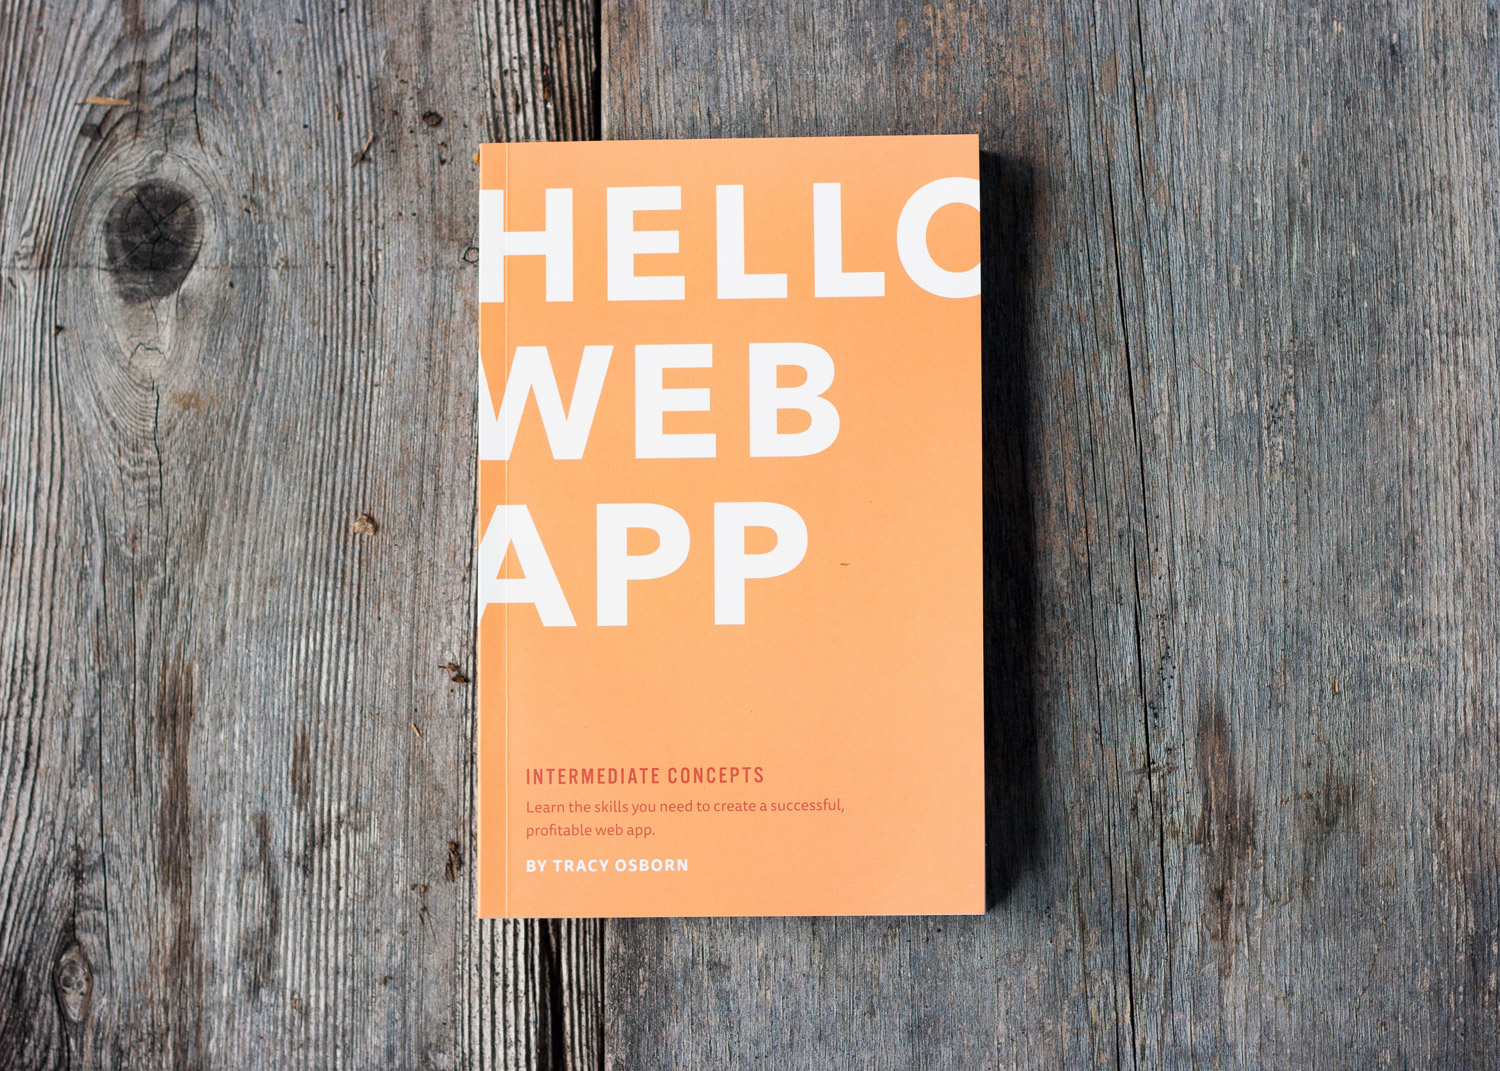 Hello Web App: Intermediate Concepts has launched!